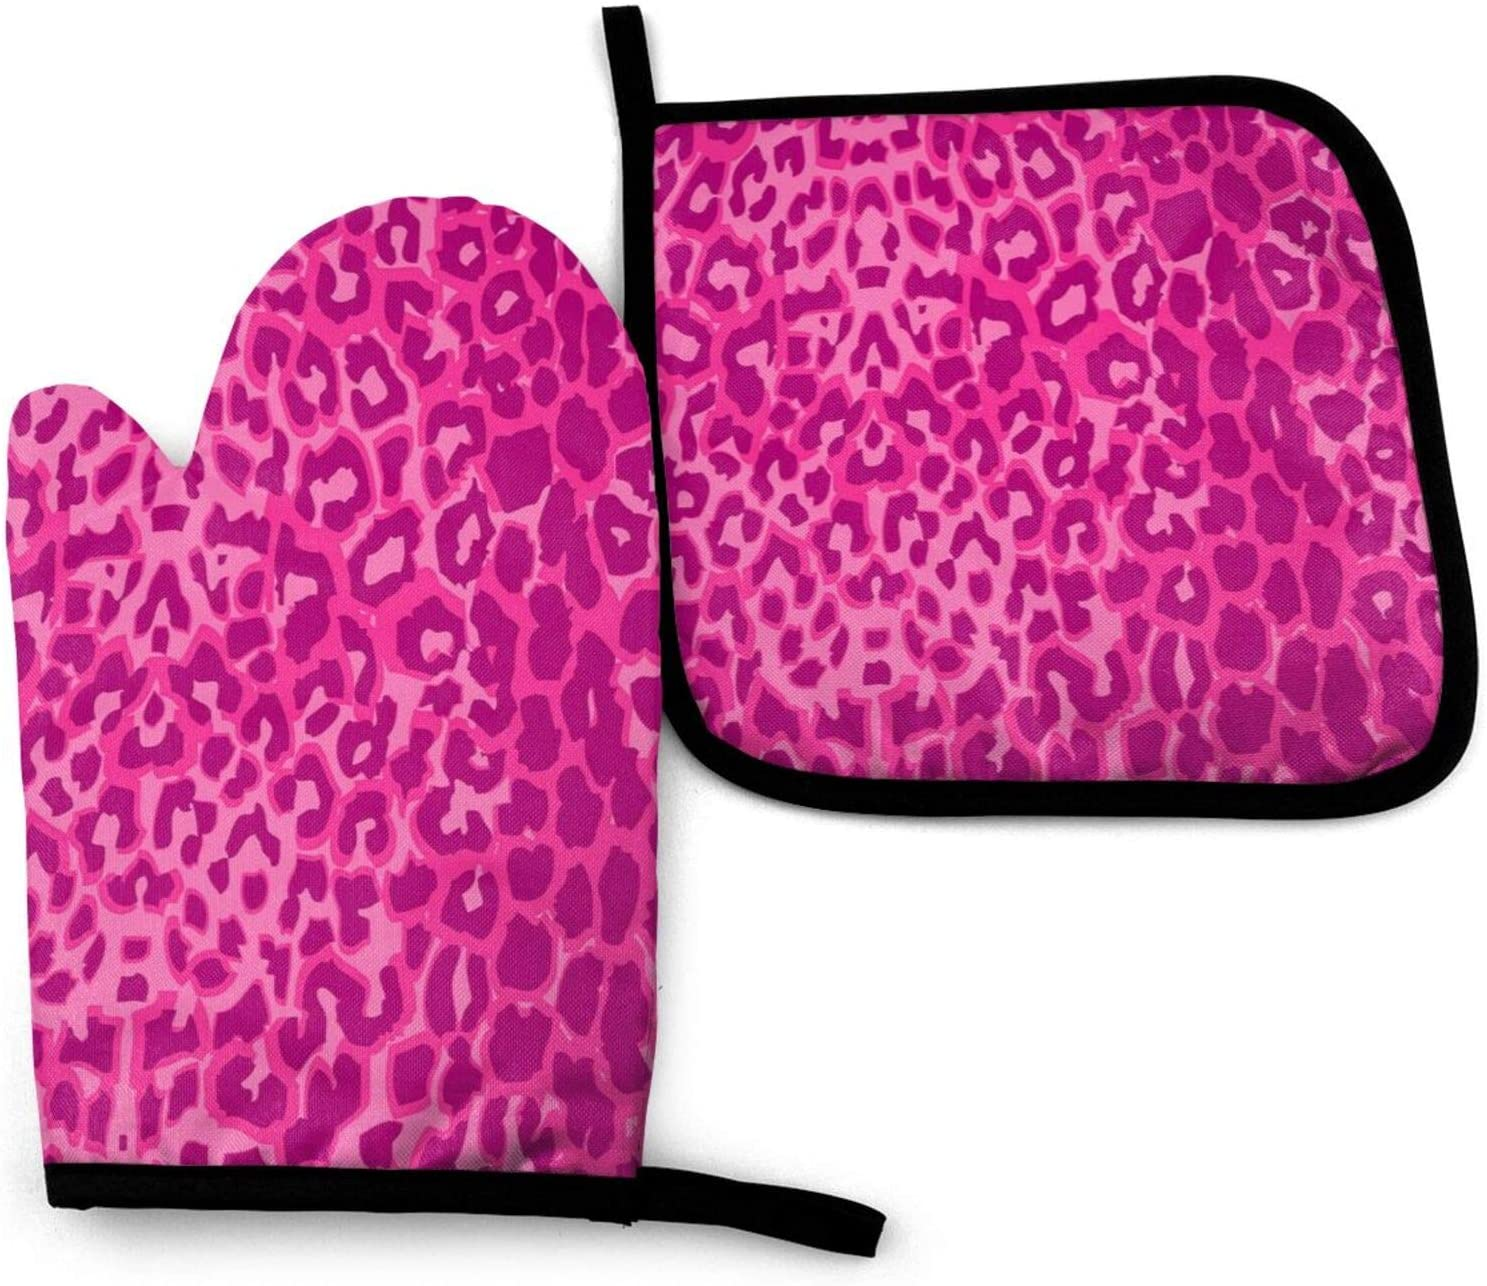 LASWEGA Pink Leopard Texture Oven Mitts and Pot Holders Set,Heat Resistant Gloves & Potholder for Cooking,Baking,Grilling,Serving,BBQ Or Dinner Party,Decorative Kitchen Gift